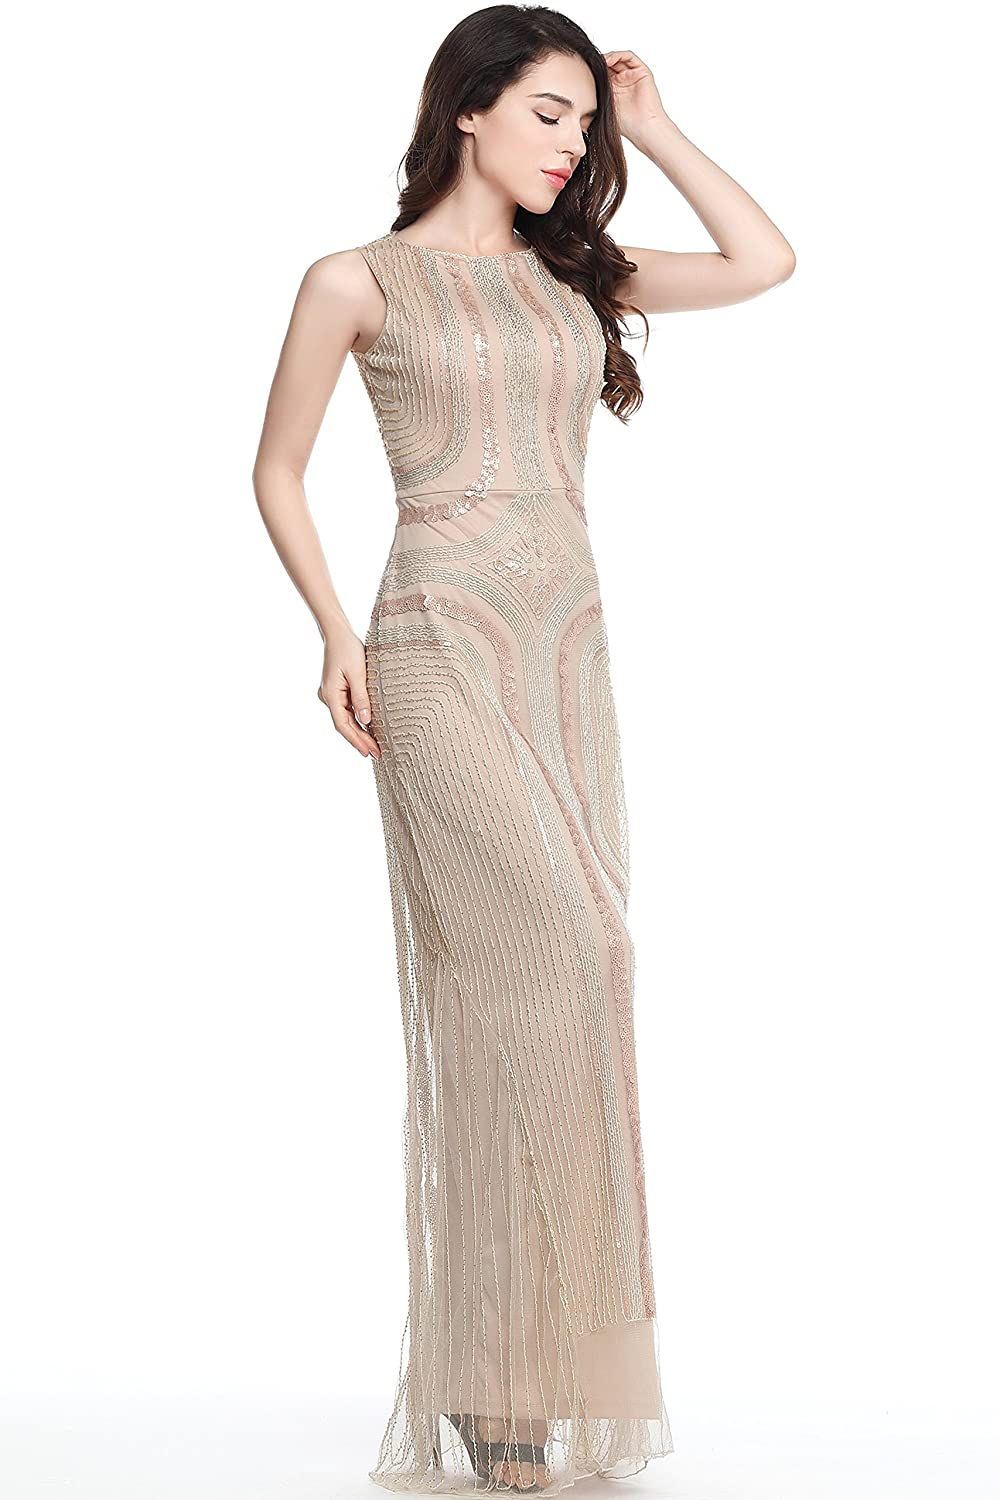 Downton Abbey Inspired Dresses BABEYOND 1920s Flapper Fancy Dress Roaring 20s Gatsby Dress Costume Vintage Sequin Beaded Long Evening Dress $39.99 AT vintagedancer.com